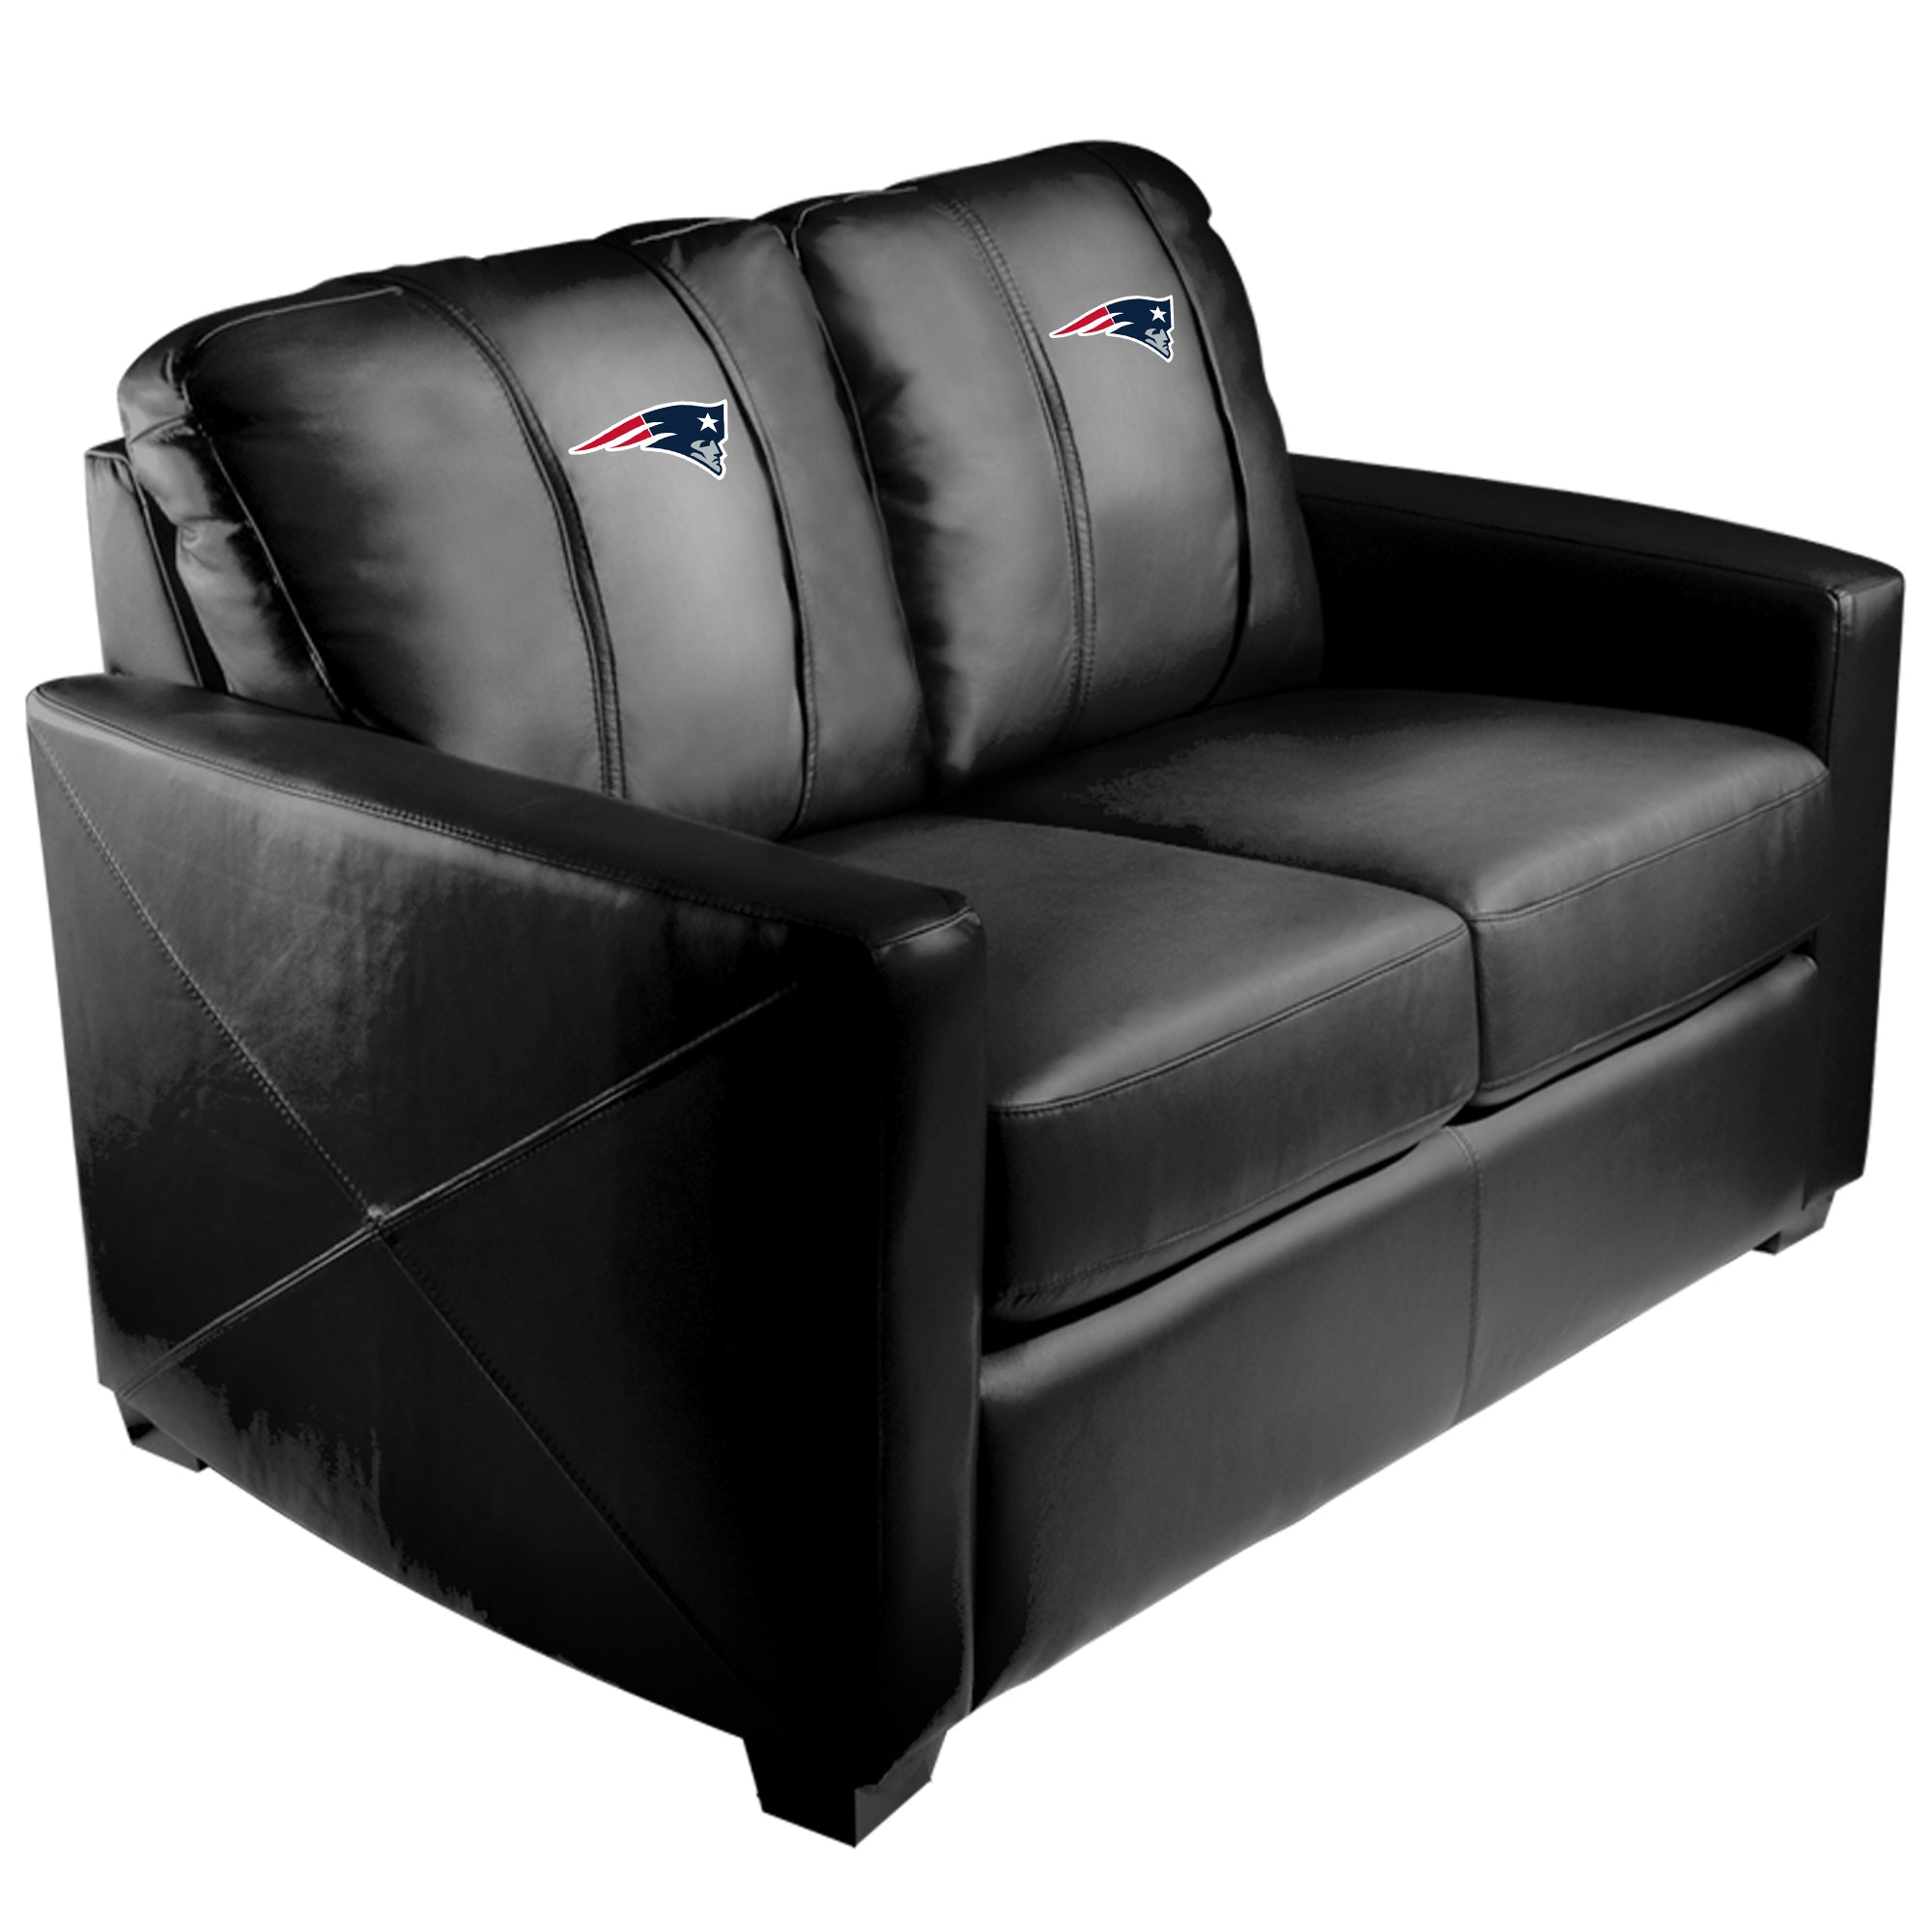 Silver Loveseat with  New England Patriots Primary Logo